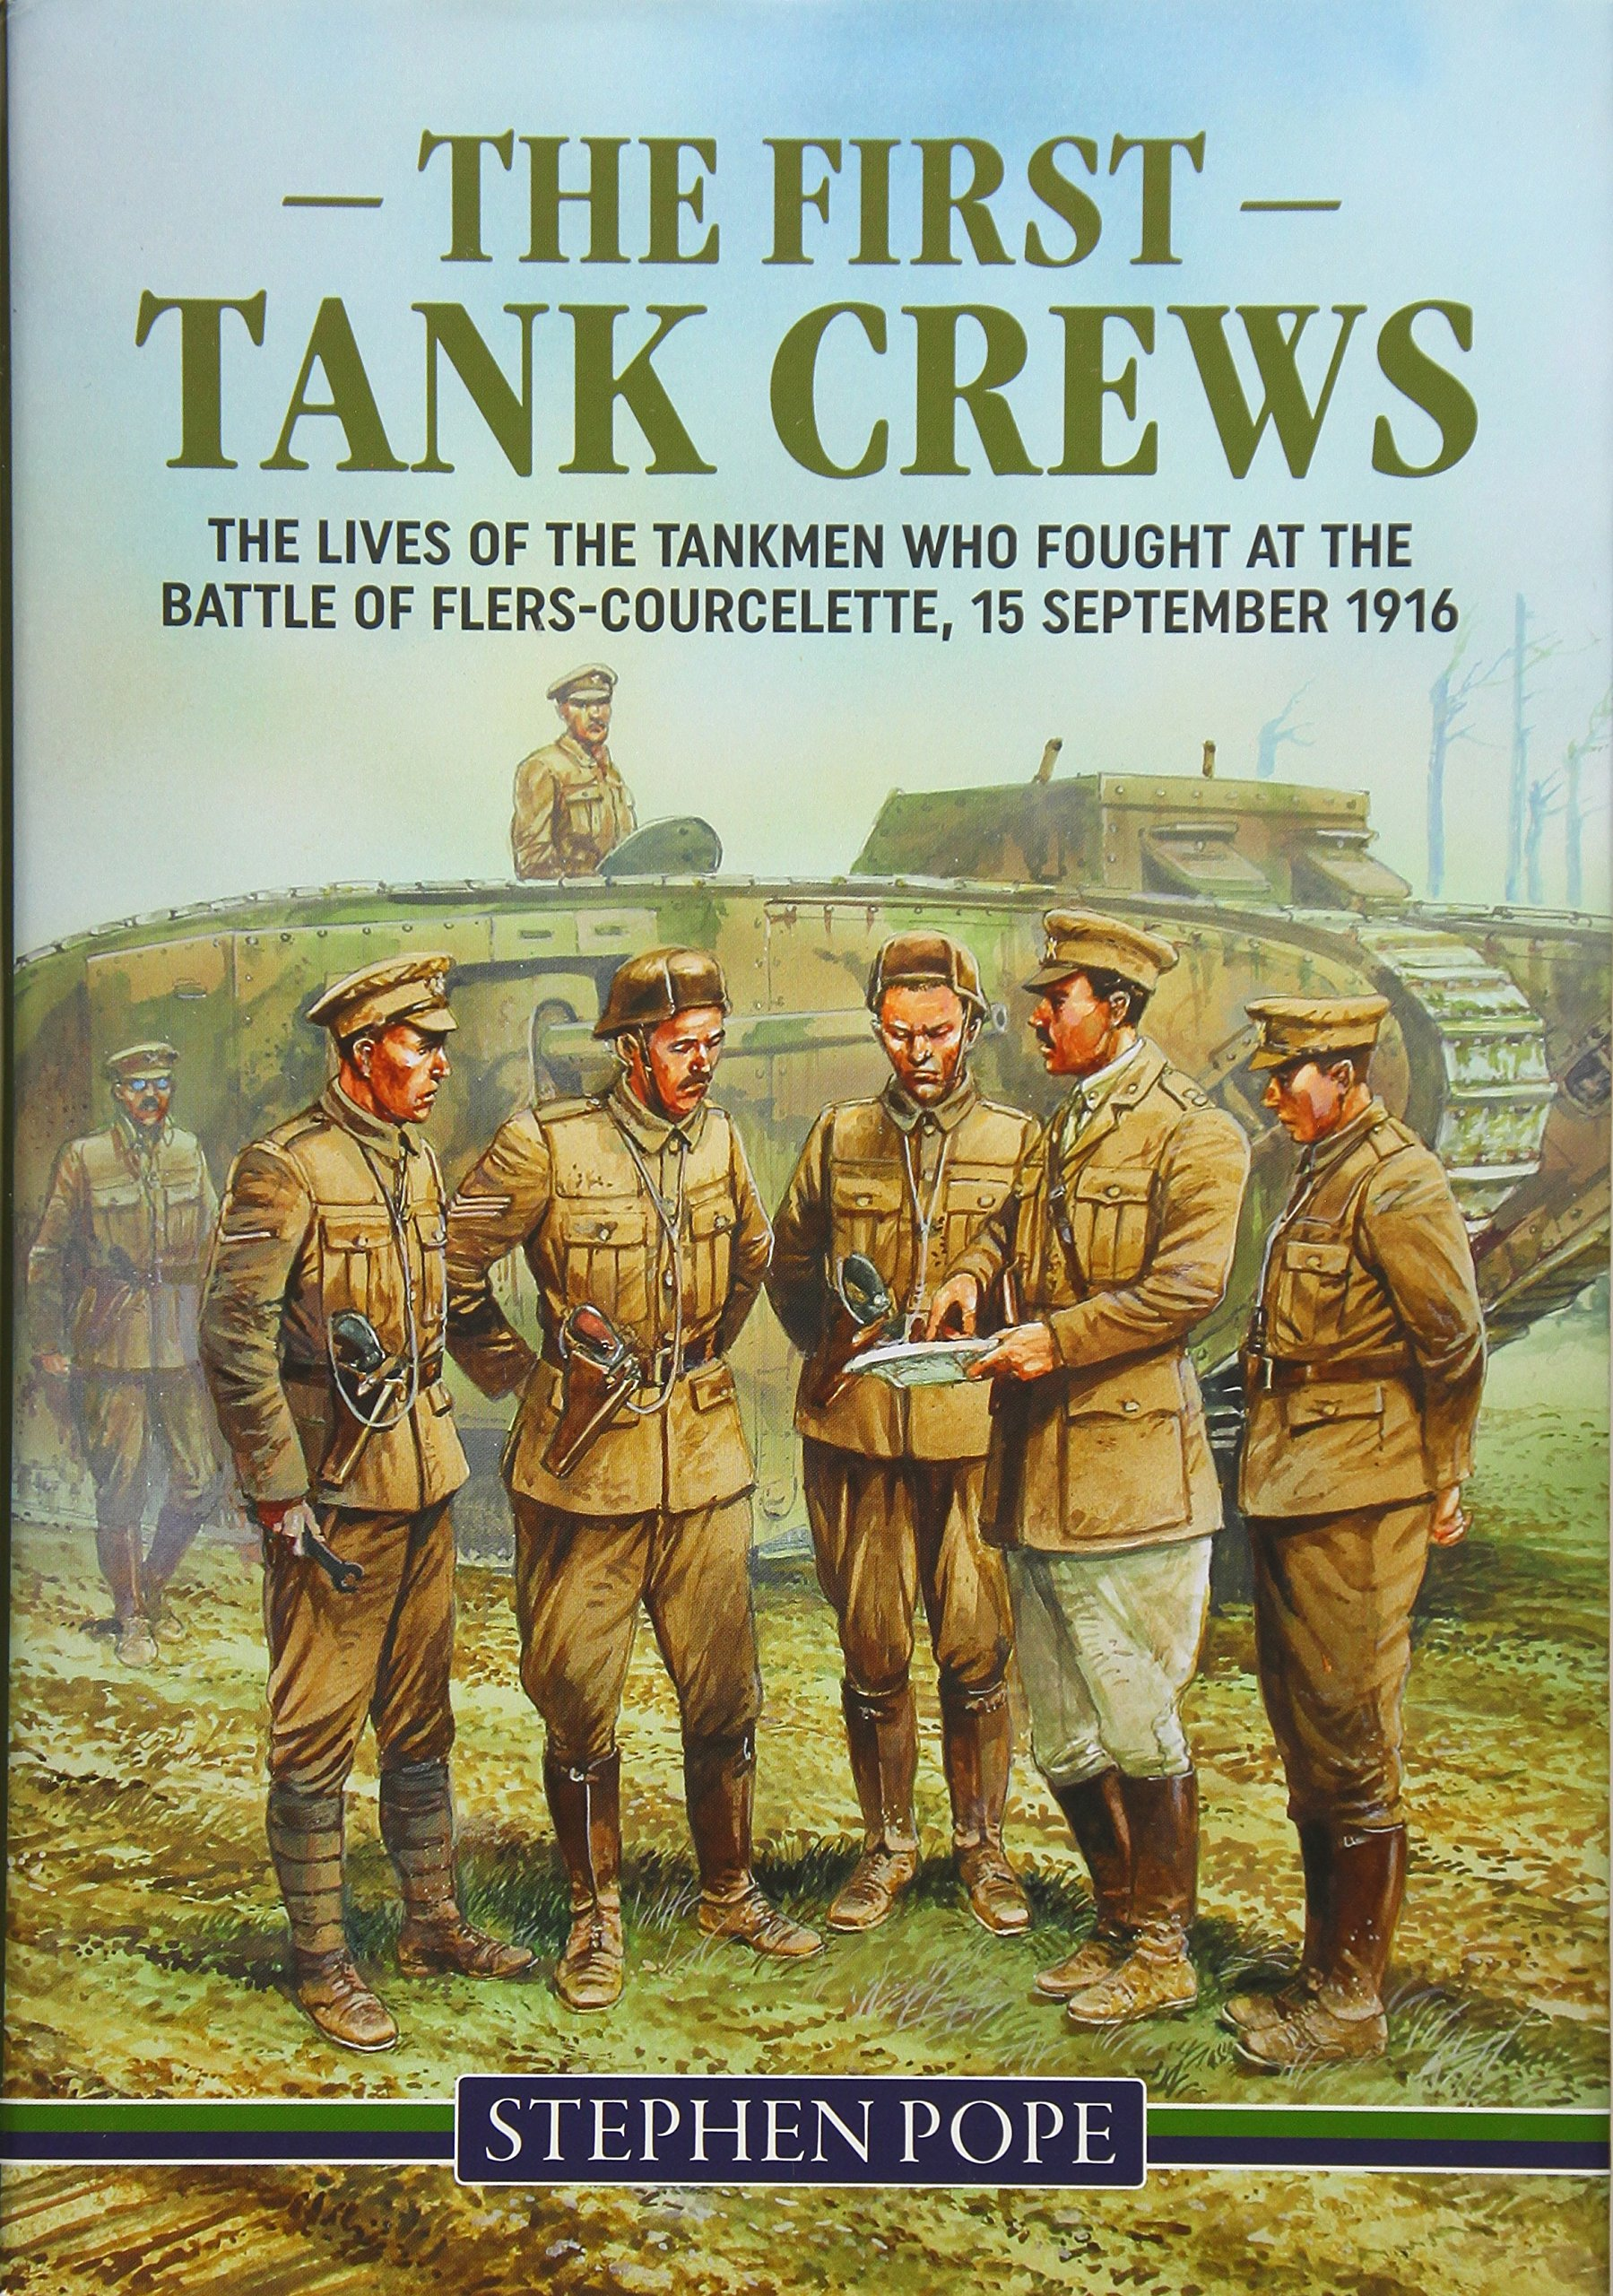 The First Tank Crews Lives Of Tankmen Who Fought At Battle Story Cambrai 1917 Flers Courcelette 15 September 1916 Stephen Pope 9781910777770